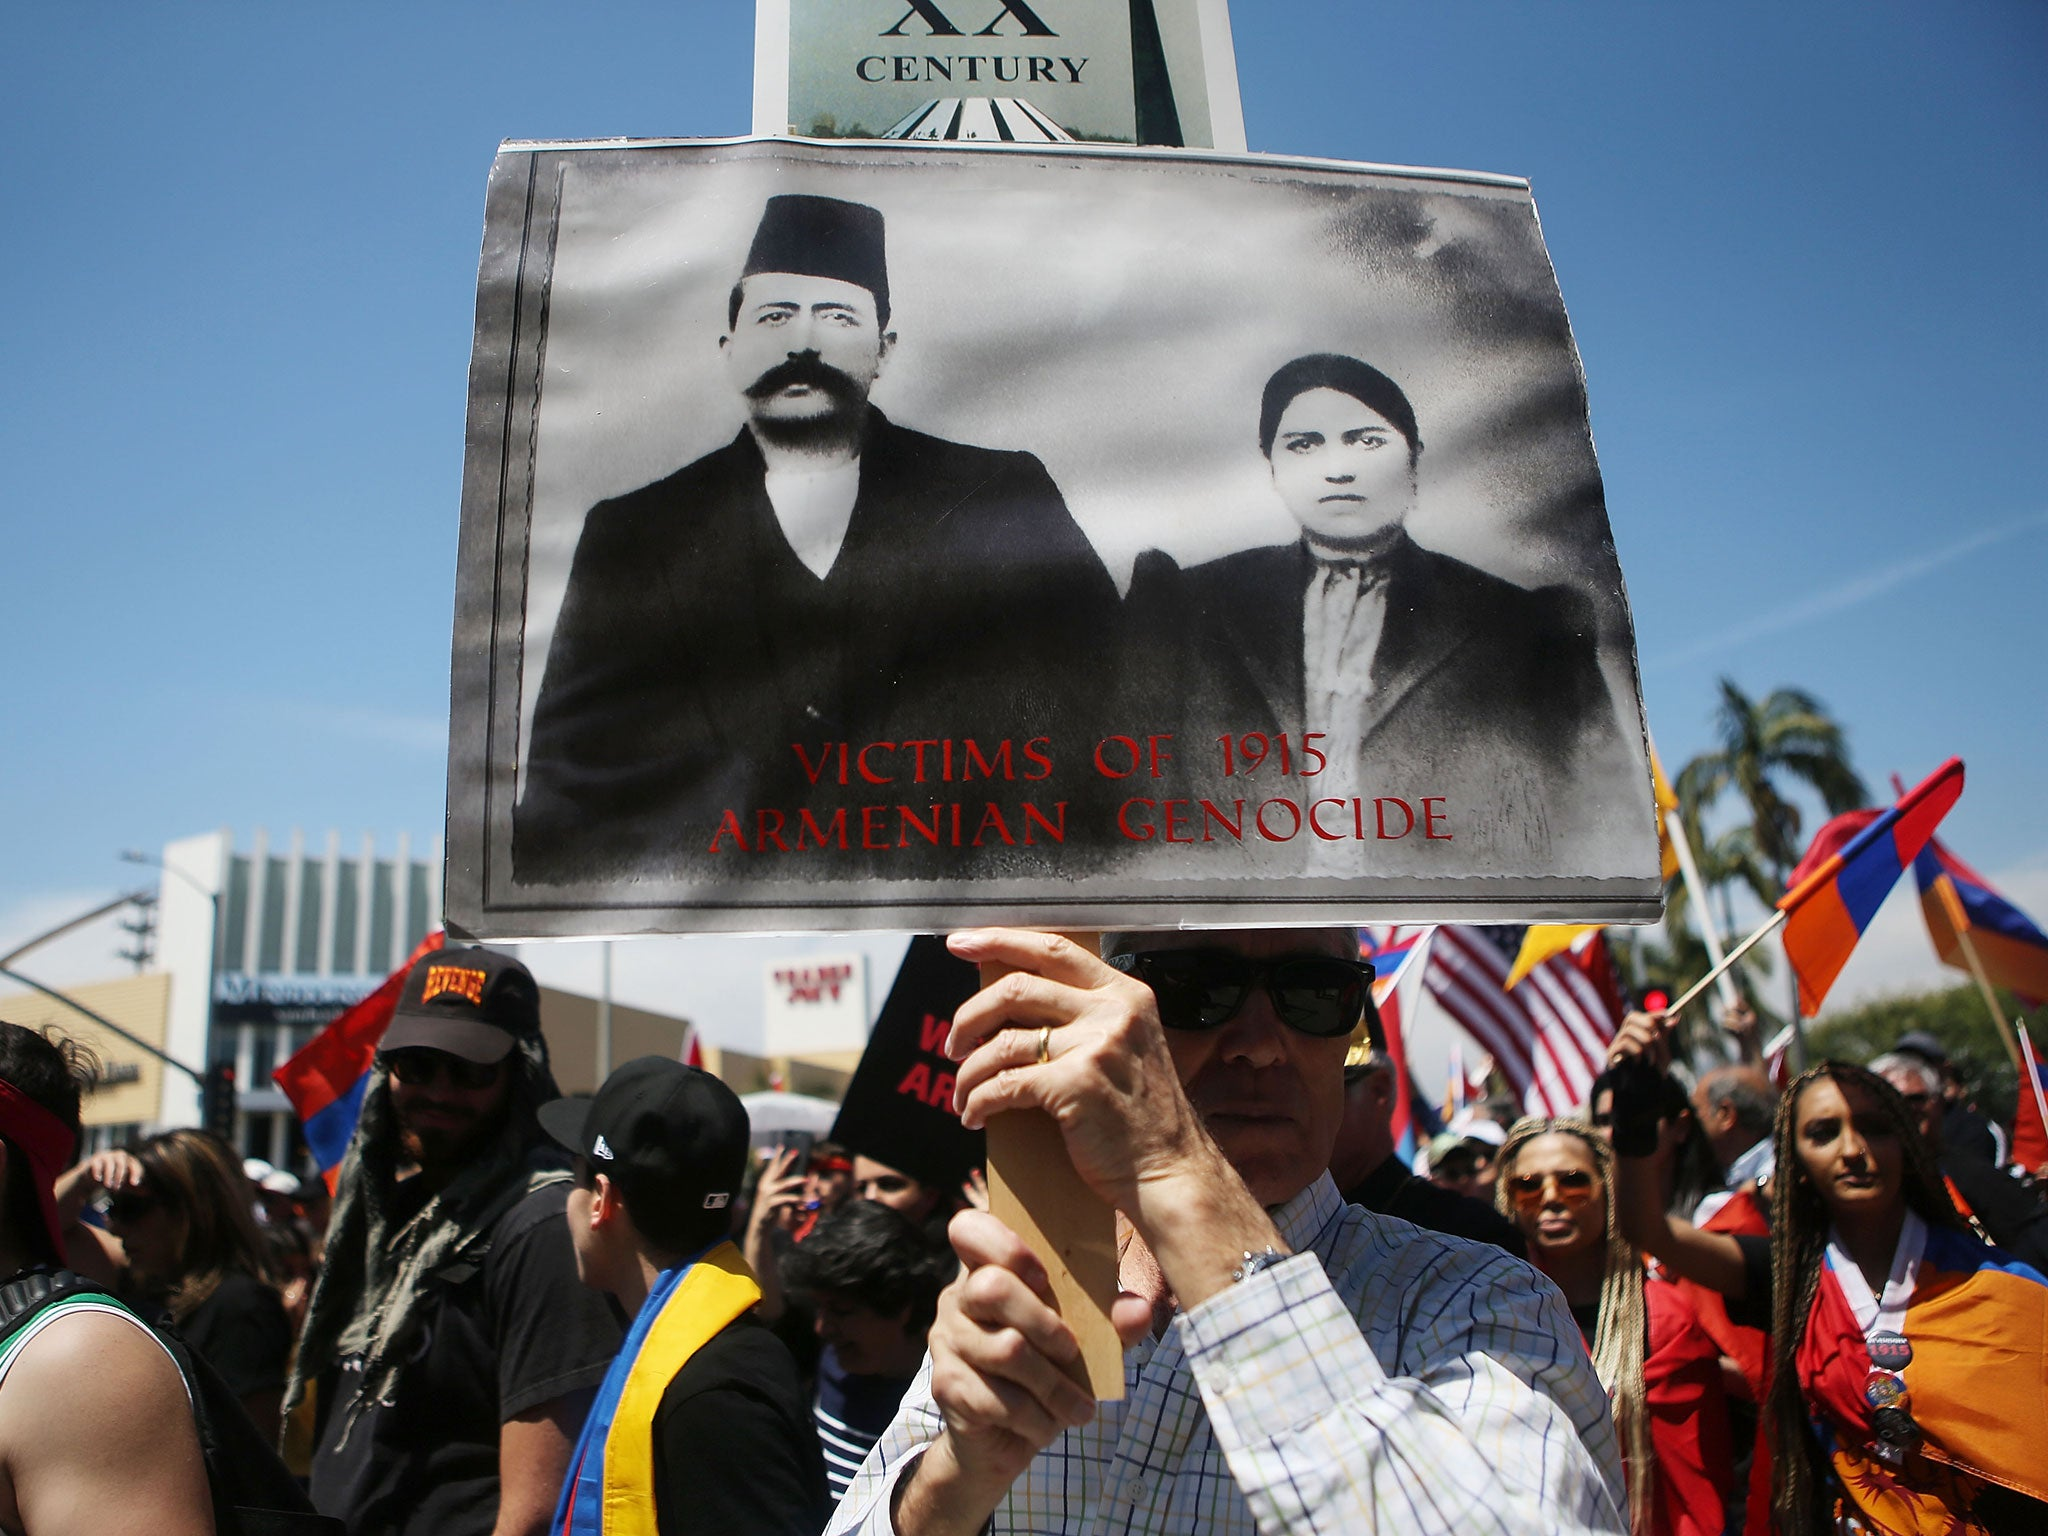 Turkey - latest news, breaking stories and comment - The Independent